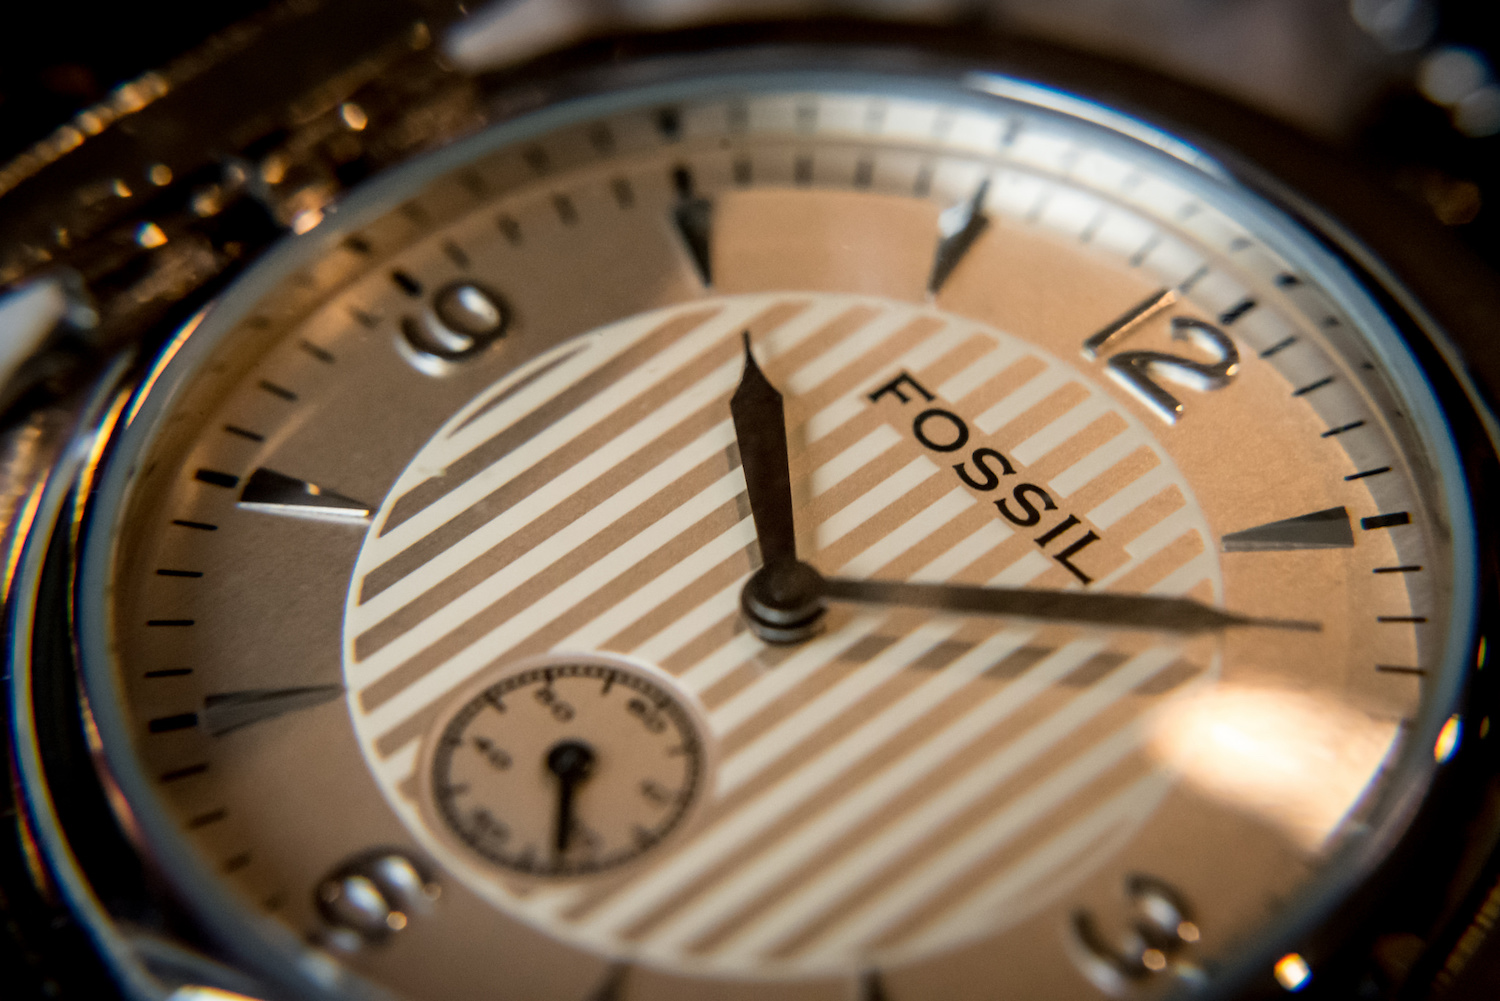 fossil watch - 5 Crucial Mistakes You Need to Avoid When Photographing Clients